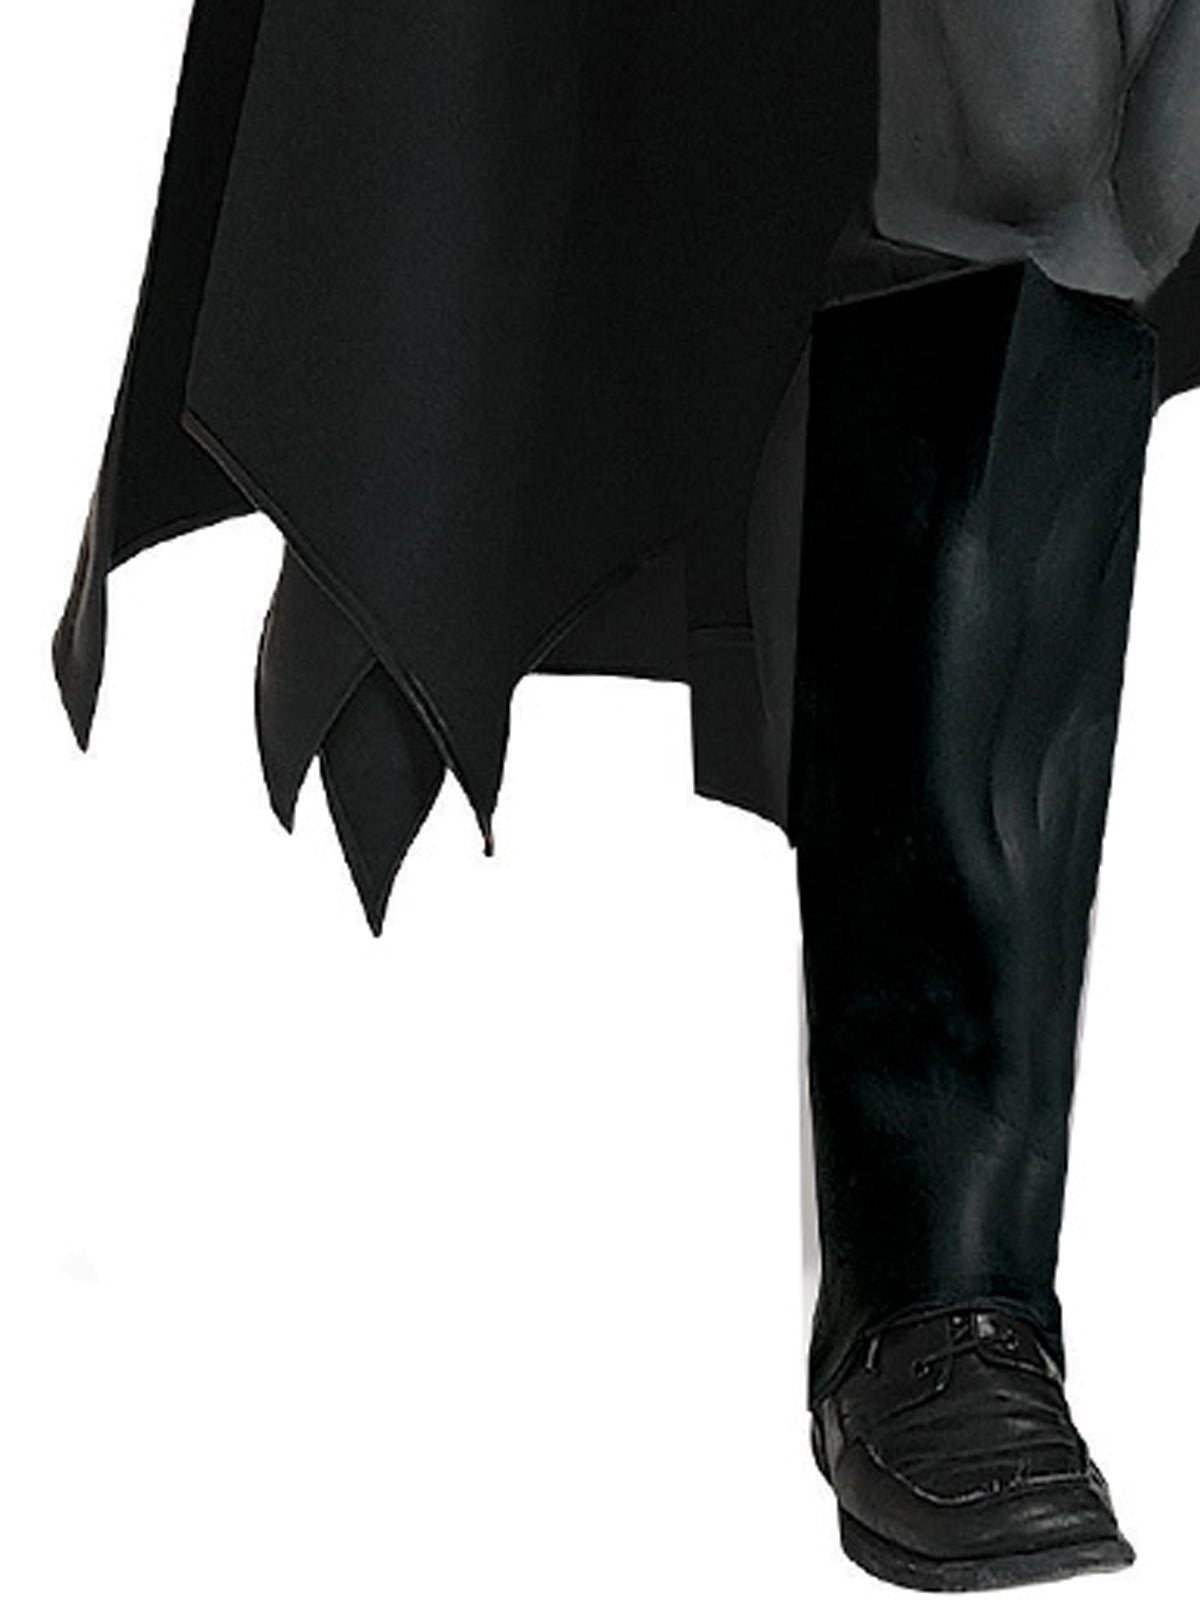 Batman Collectors Edition - Buy Online Only - The Costume Company | Australian & Family Owned